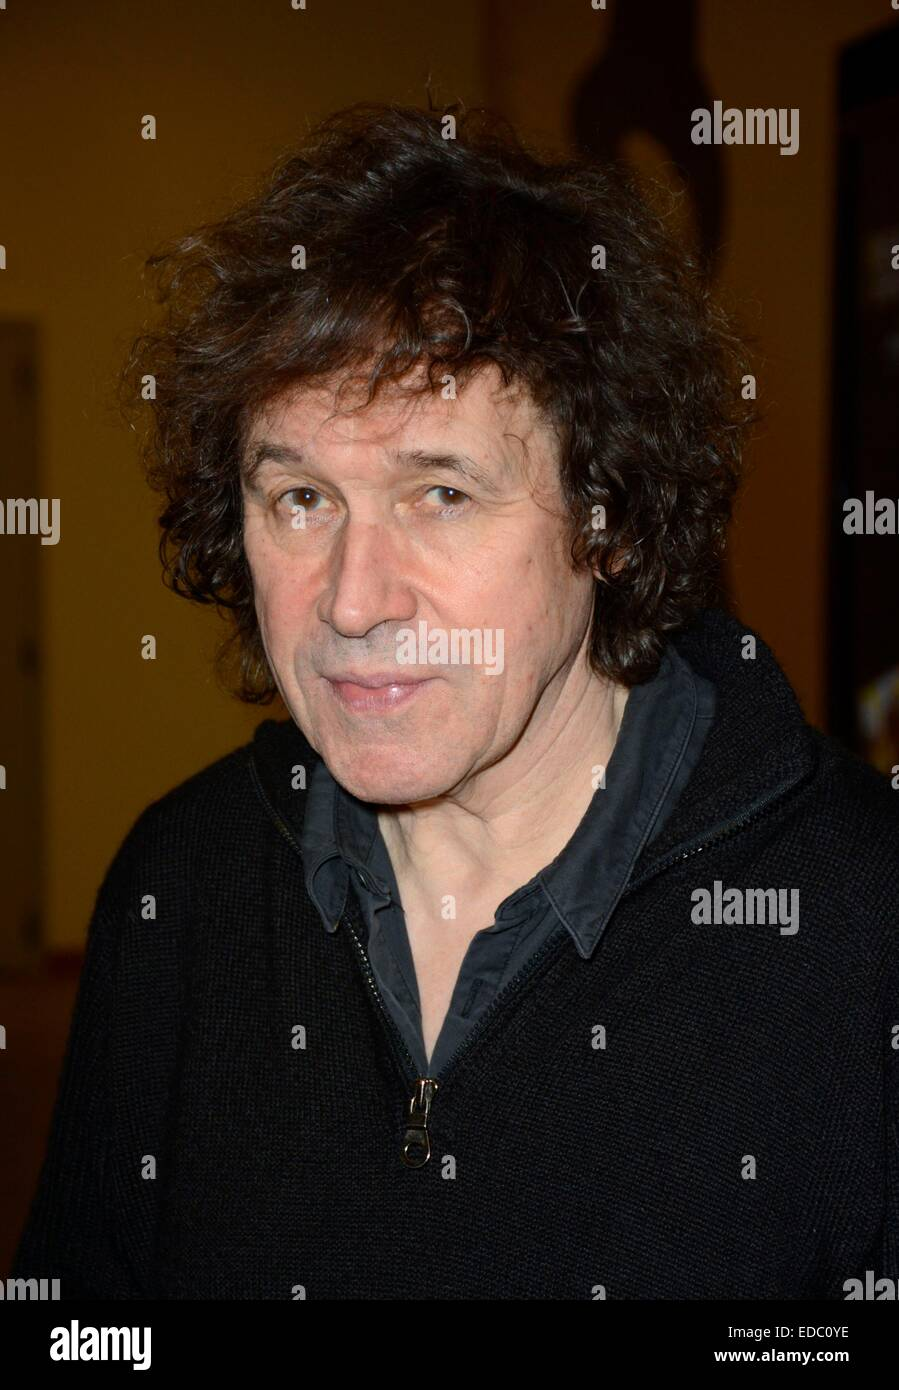 Stephen Rea out and about for Celebrity Candids - SUN, , New York, NY January 4, 2015. Photo By: Derek Storm/Everett - Stock Image